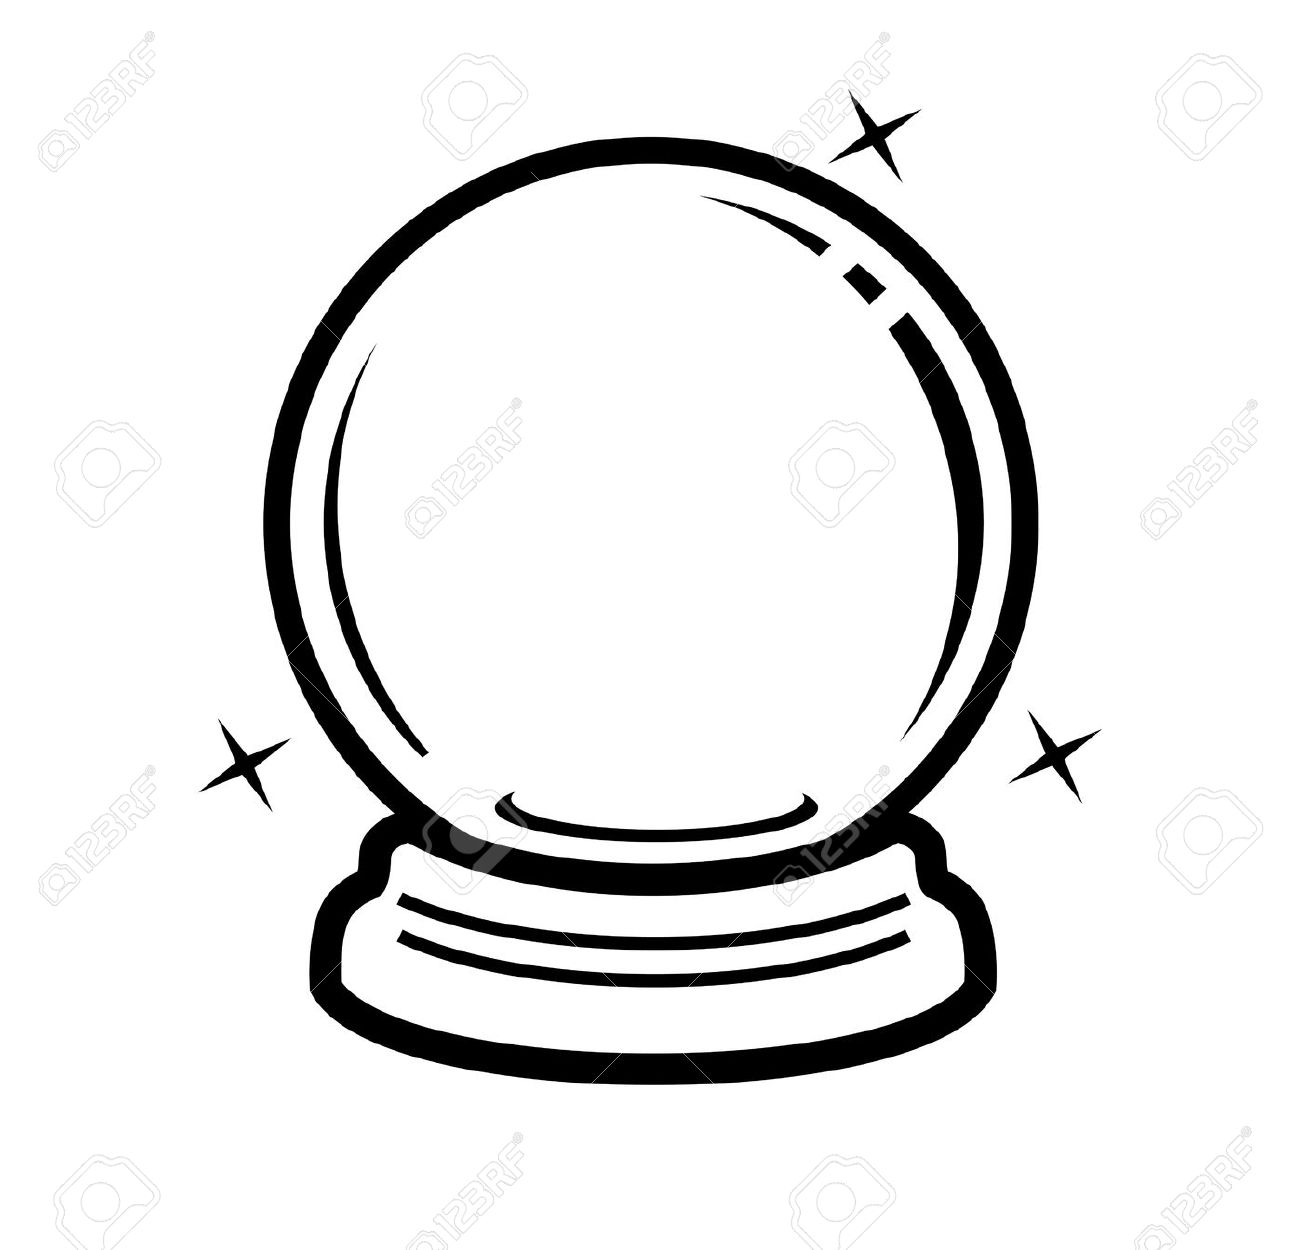 crystal ball coloring pages | Crystal Ball coloring, Download Crystal Ball coloring for ...